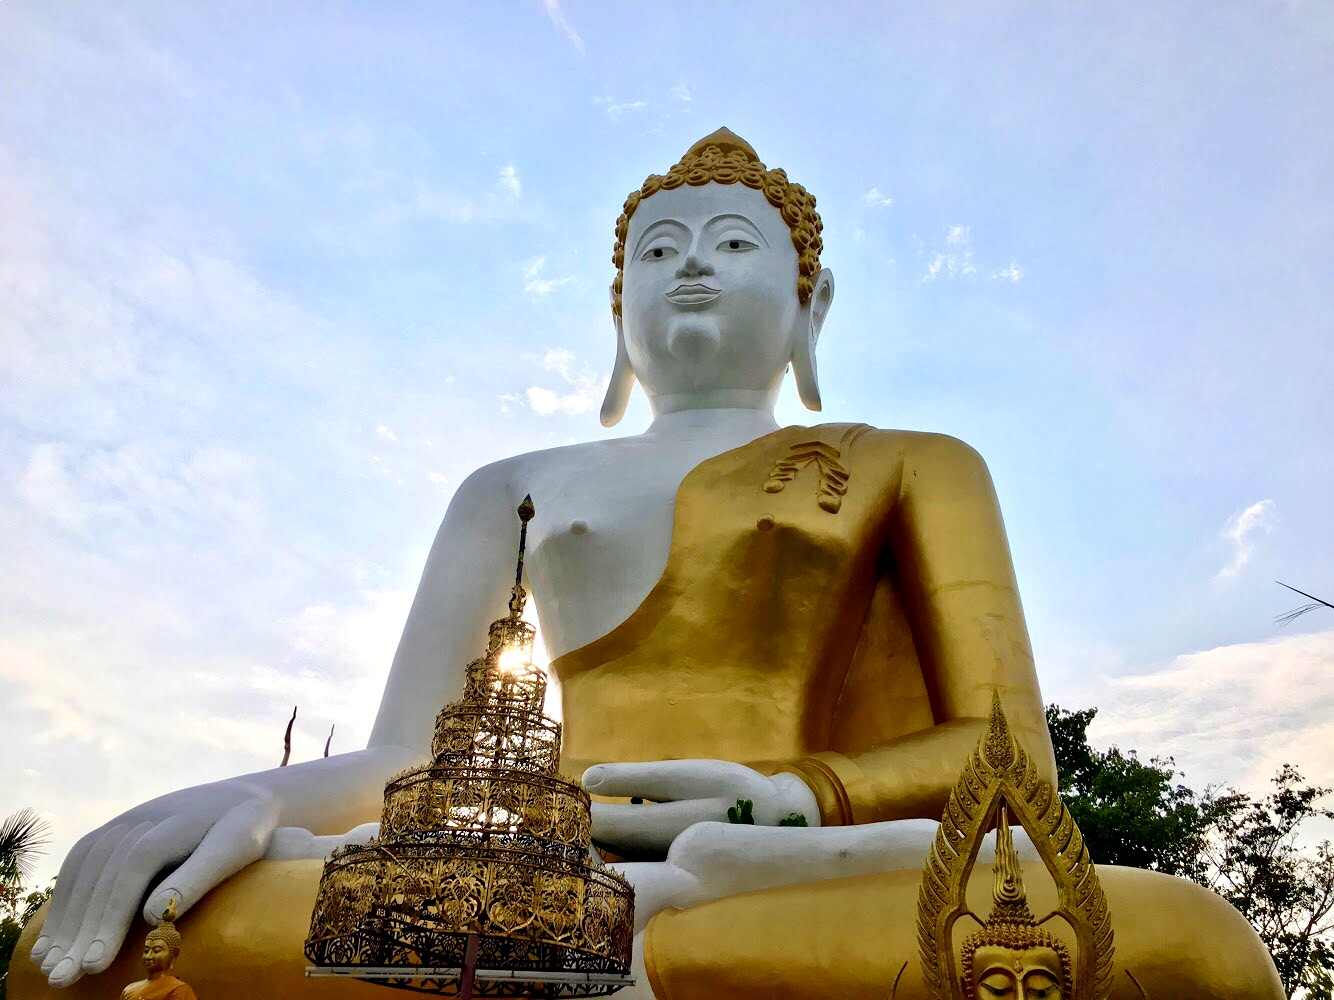 The seated Buddha at Wat Phra That Doi Kham rises over five stories high